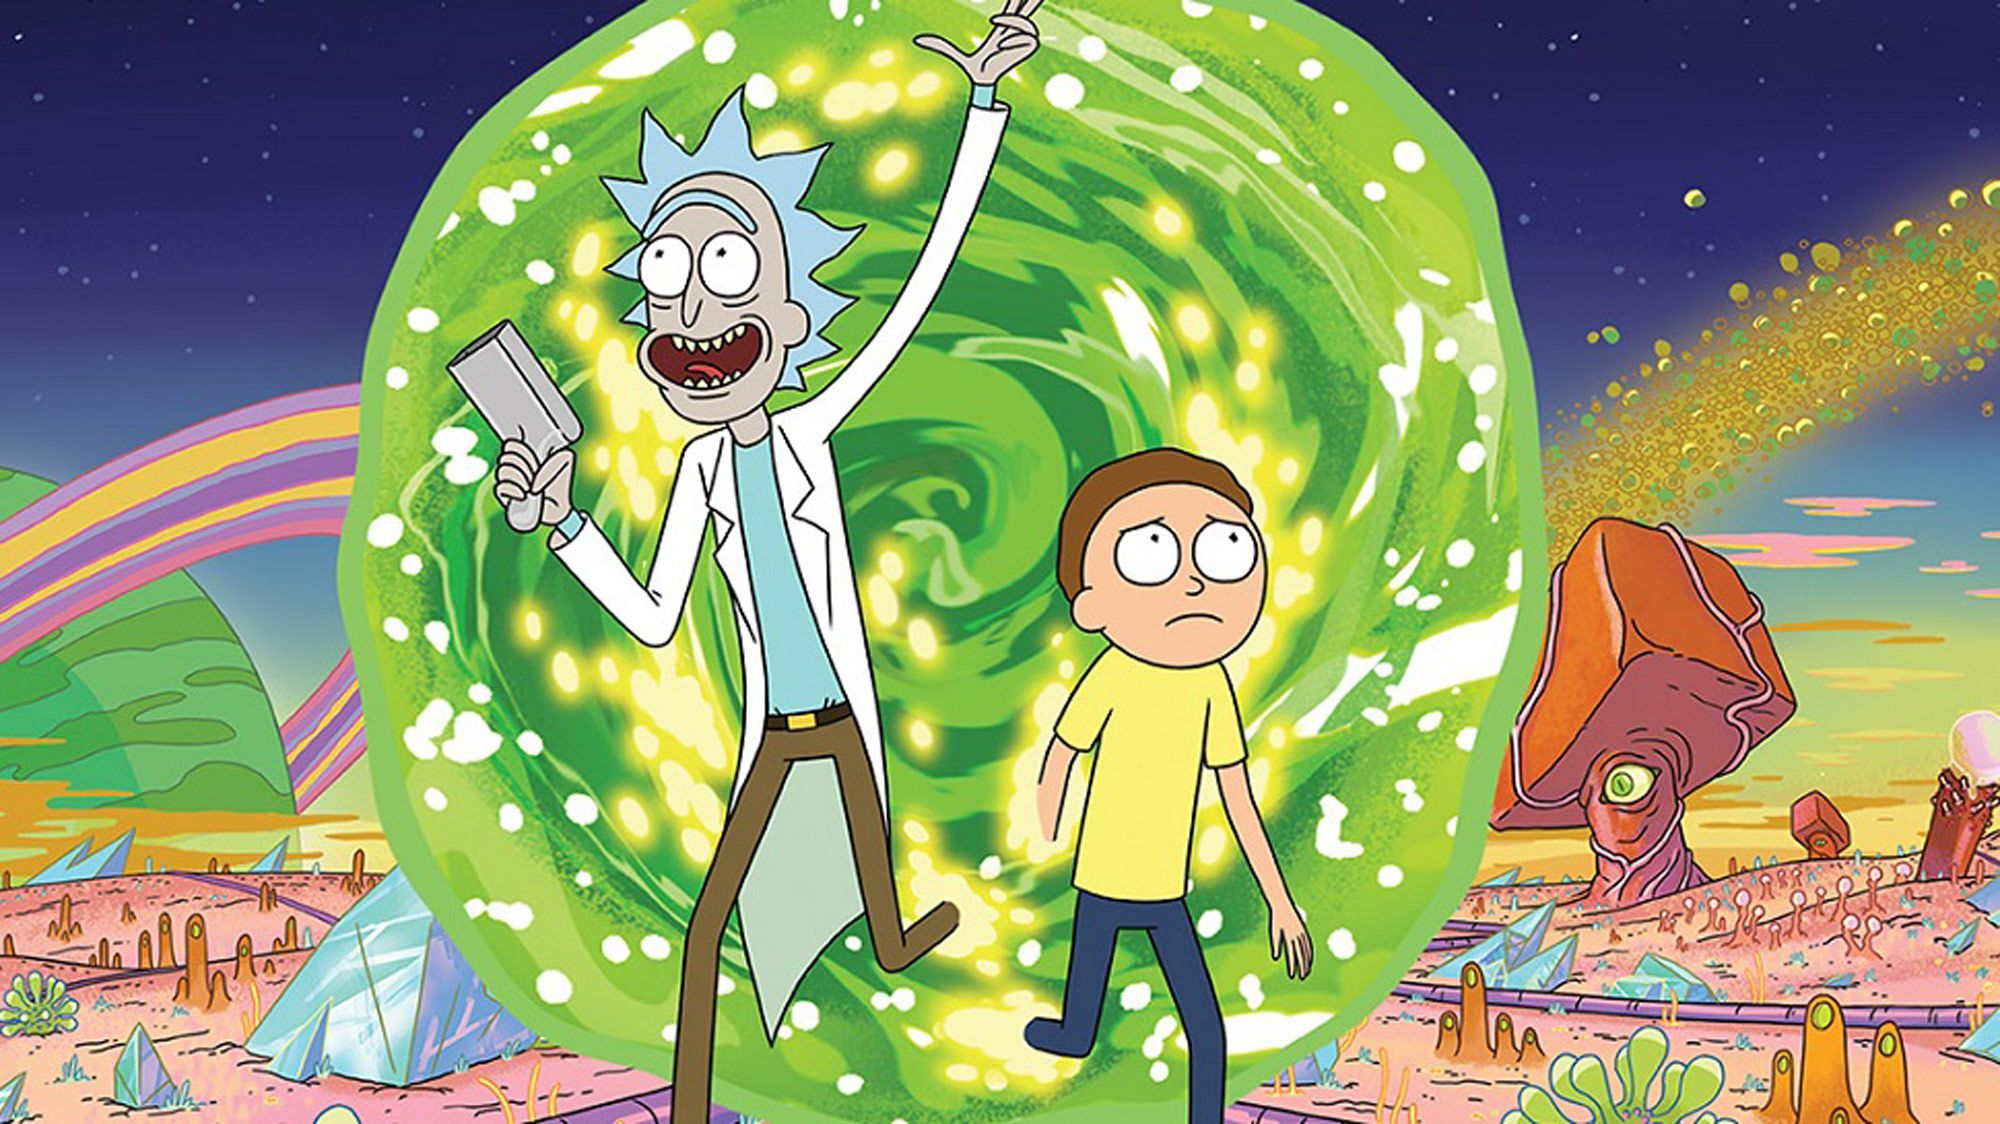 Rick and Morty Season 4 Episode 6 Plot Spoilers Super Bowl Pringles Ad reveals Story Details